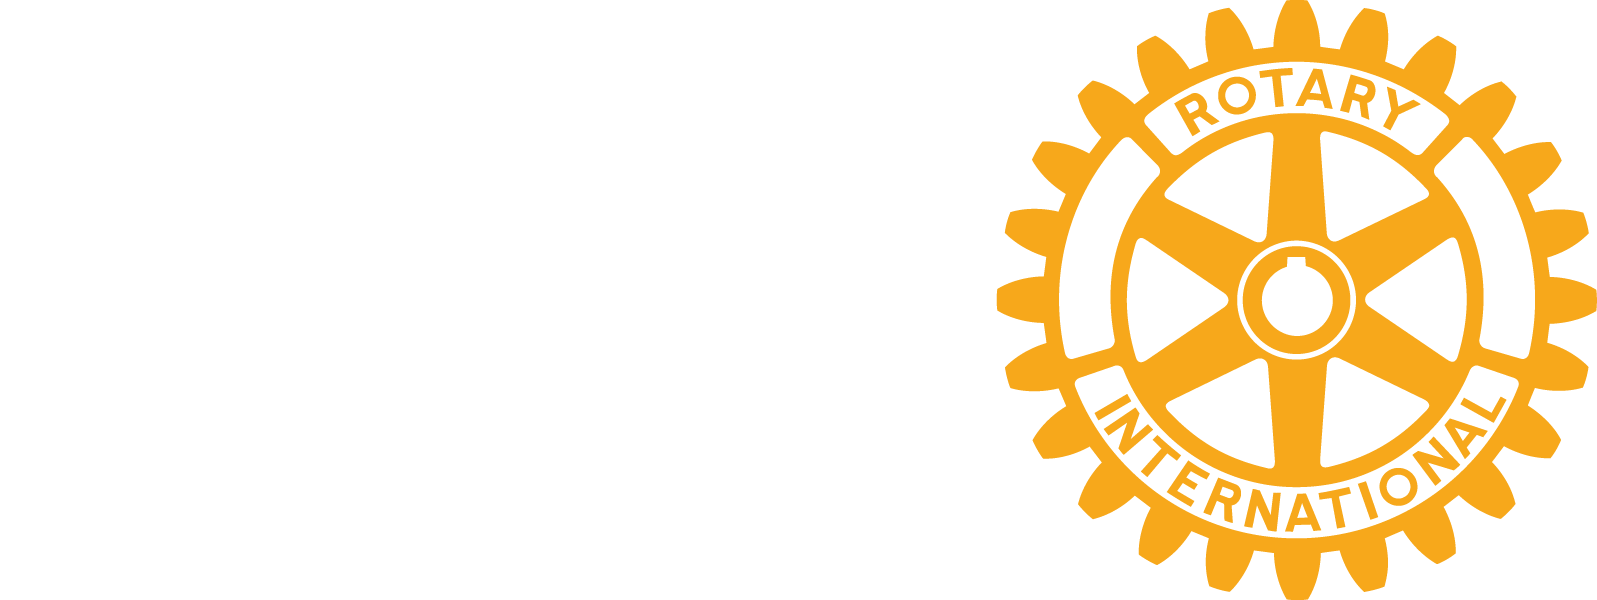 The Rotary Vocational Fund of Arizona  logo